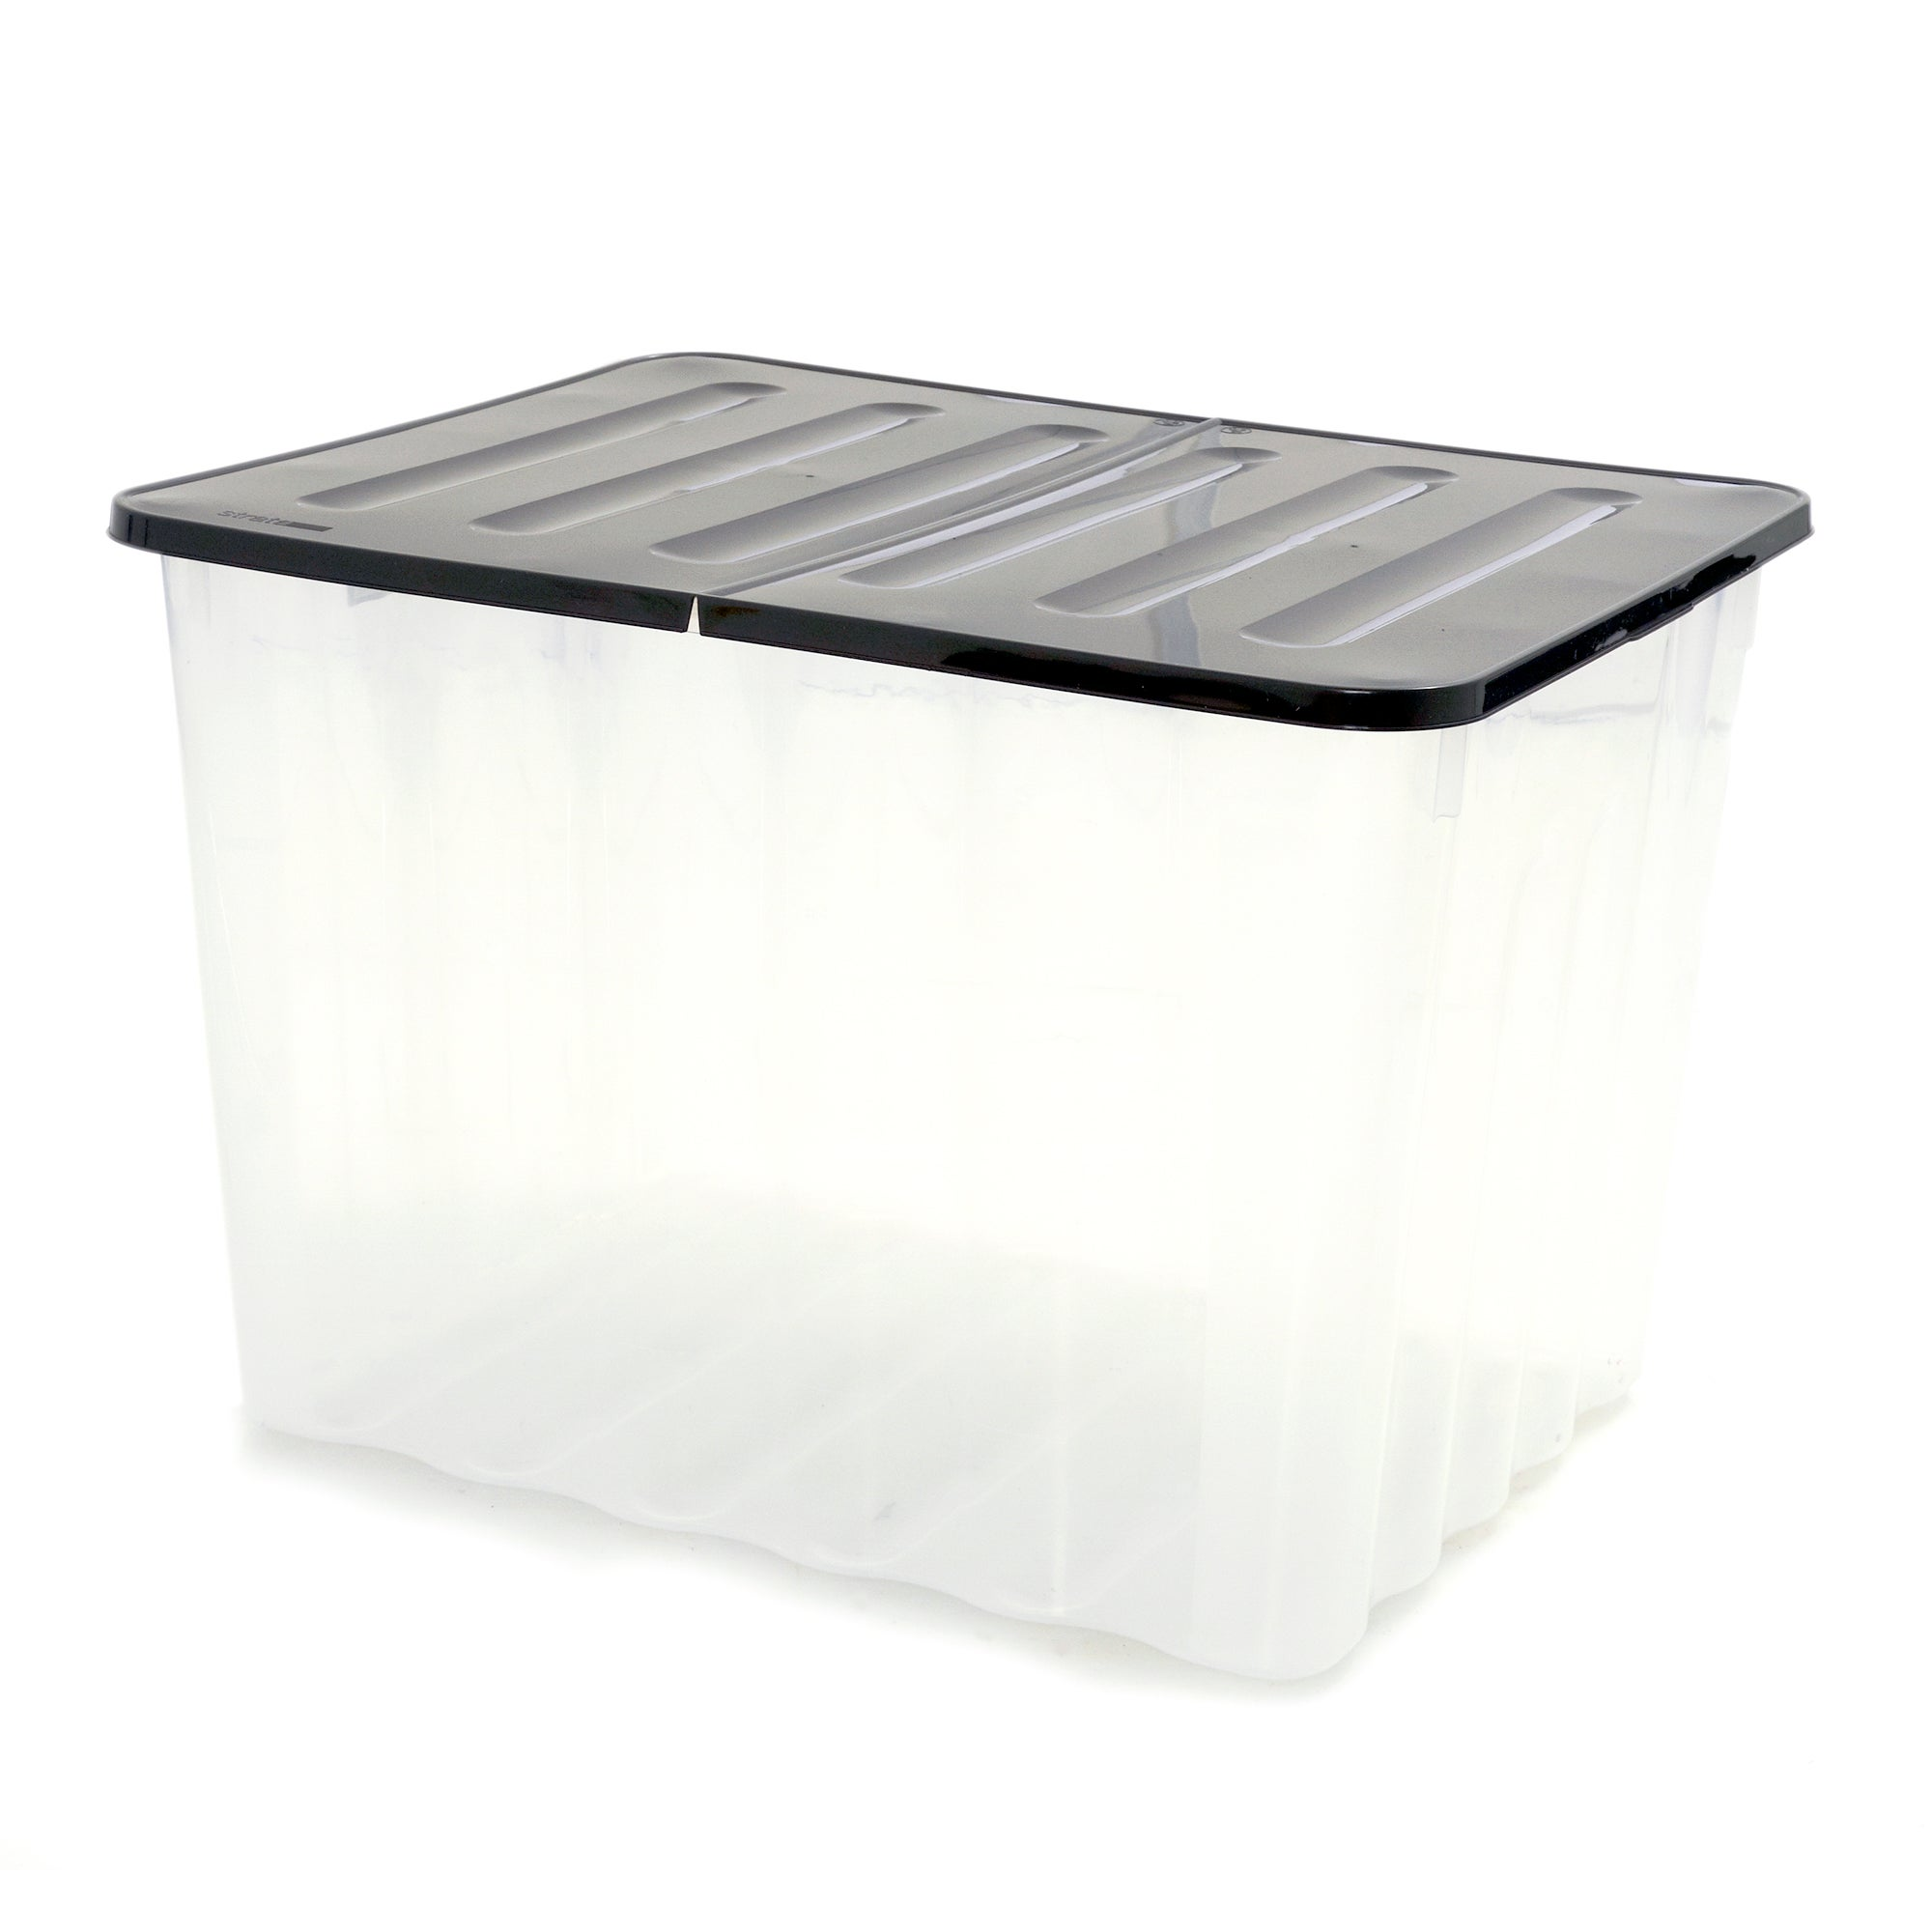 Supa Nova 70 Litre Crate with Lid